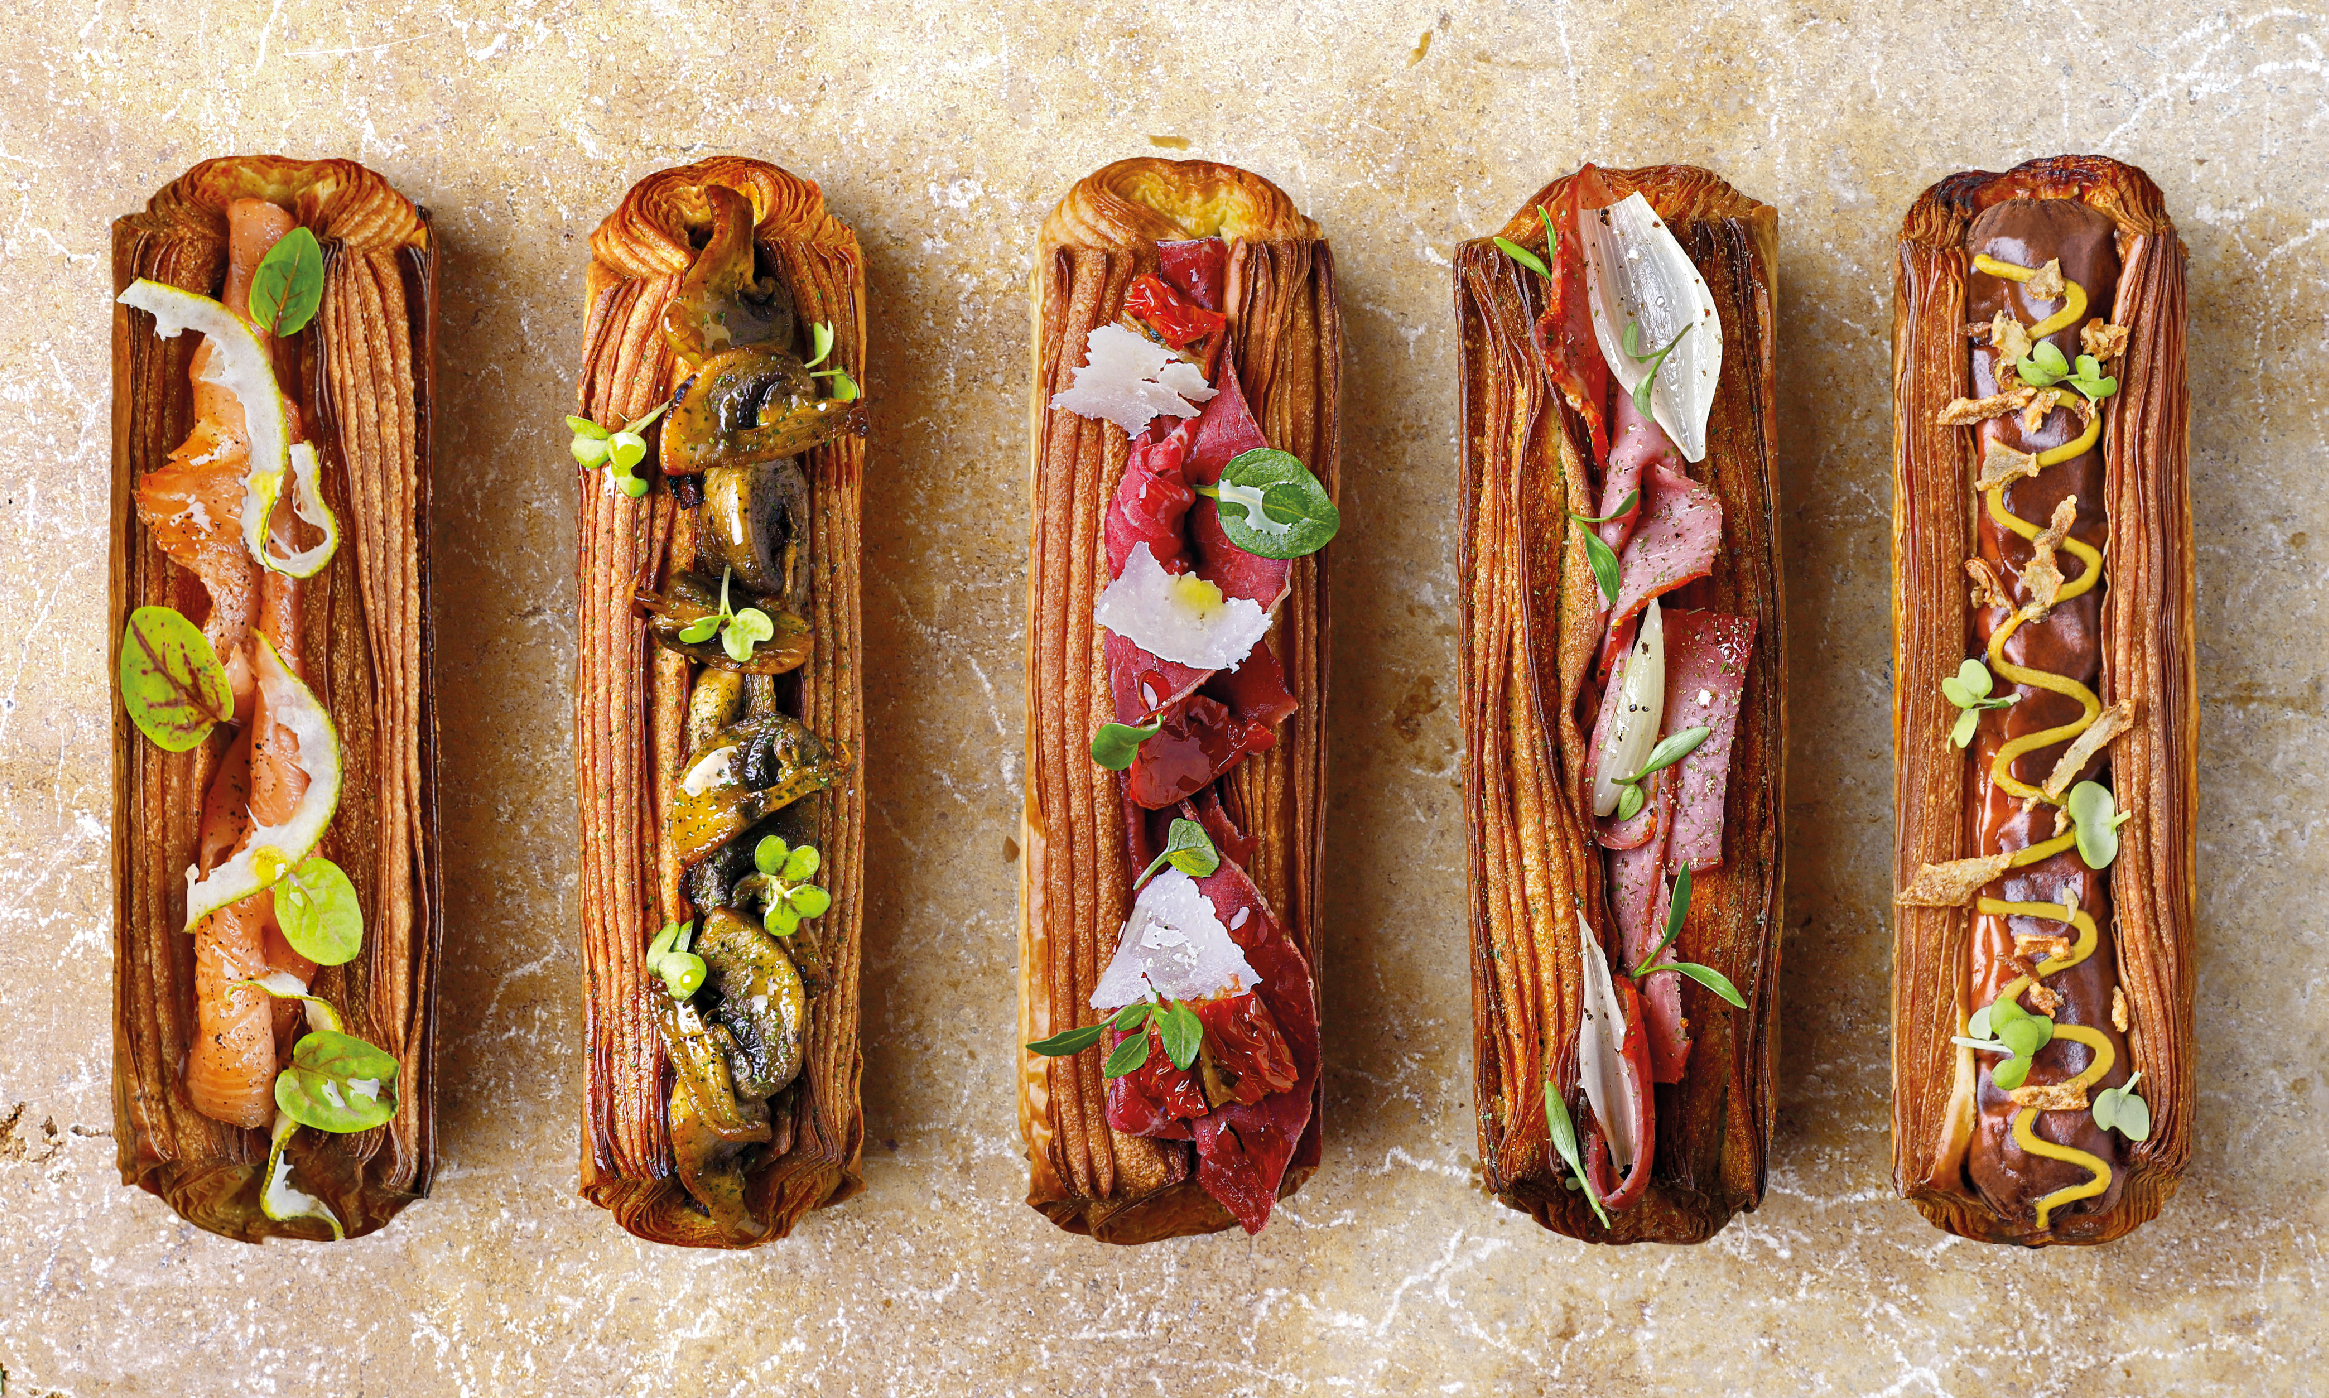 A quartet of pastry eclairs topped with delicately cut fruits, herbs, and flowers, seen from above